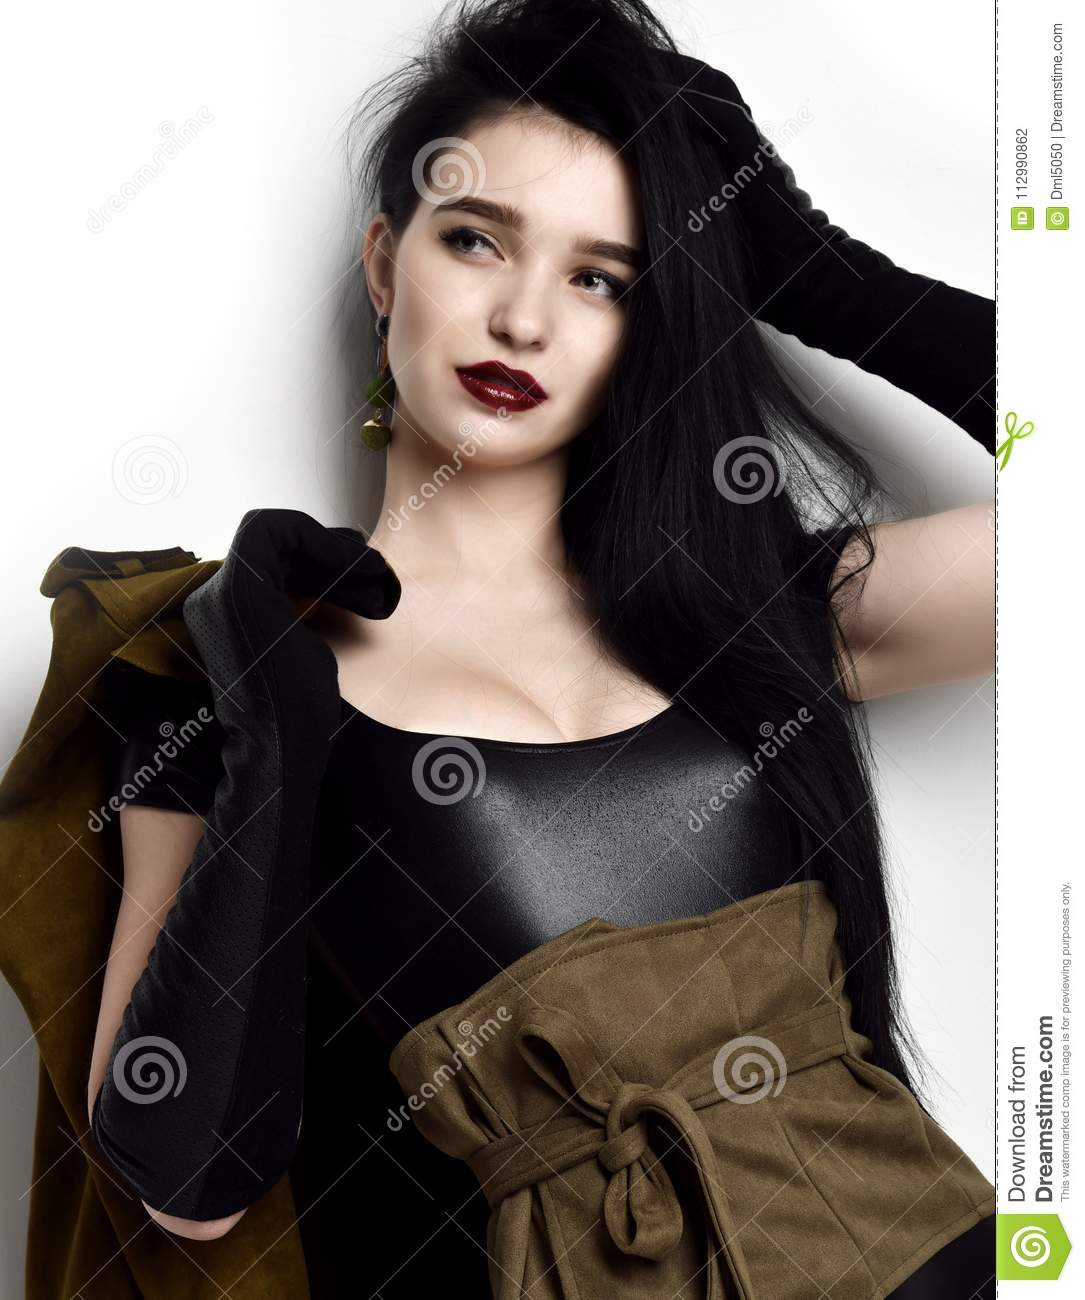 Beautiful woman wear fashion military cloth dark green jacket uniform on holiday day of victory May 9 Russia